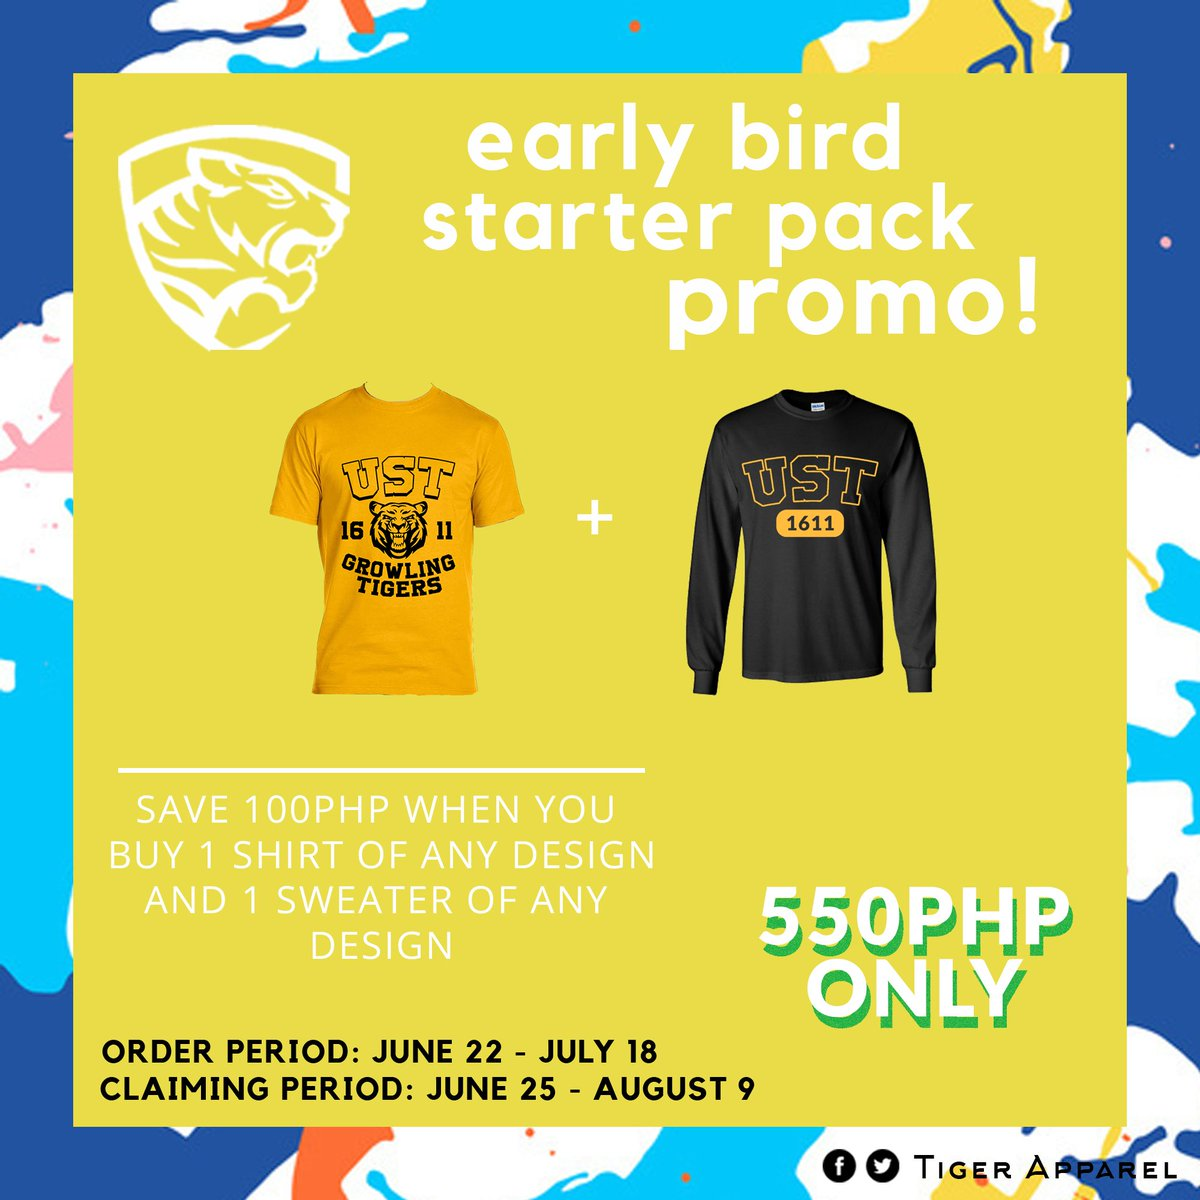 Wait, there is more!! The early bird always catch the worm!  Place your order from June 22 - July 18 and claim it from June 25-August 9 to avail our early bird starter pack promo! That's a huge 100php discount already  Buy yours now! <br>http://pic.twitter.com/4LyE1wnr6S